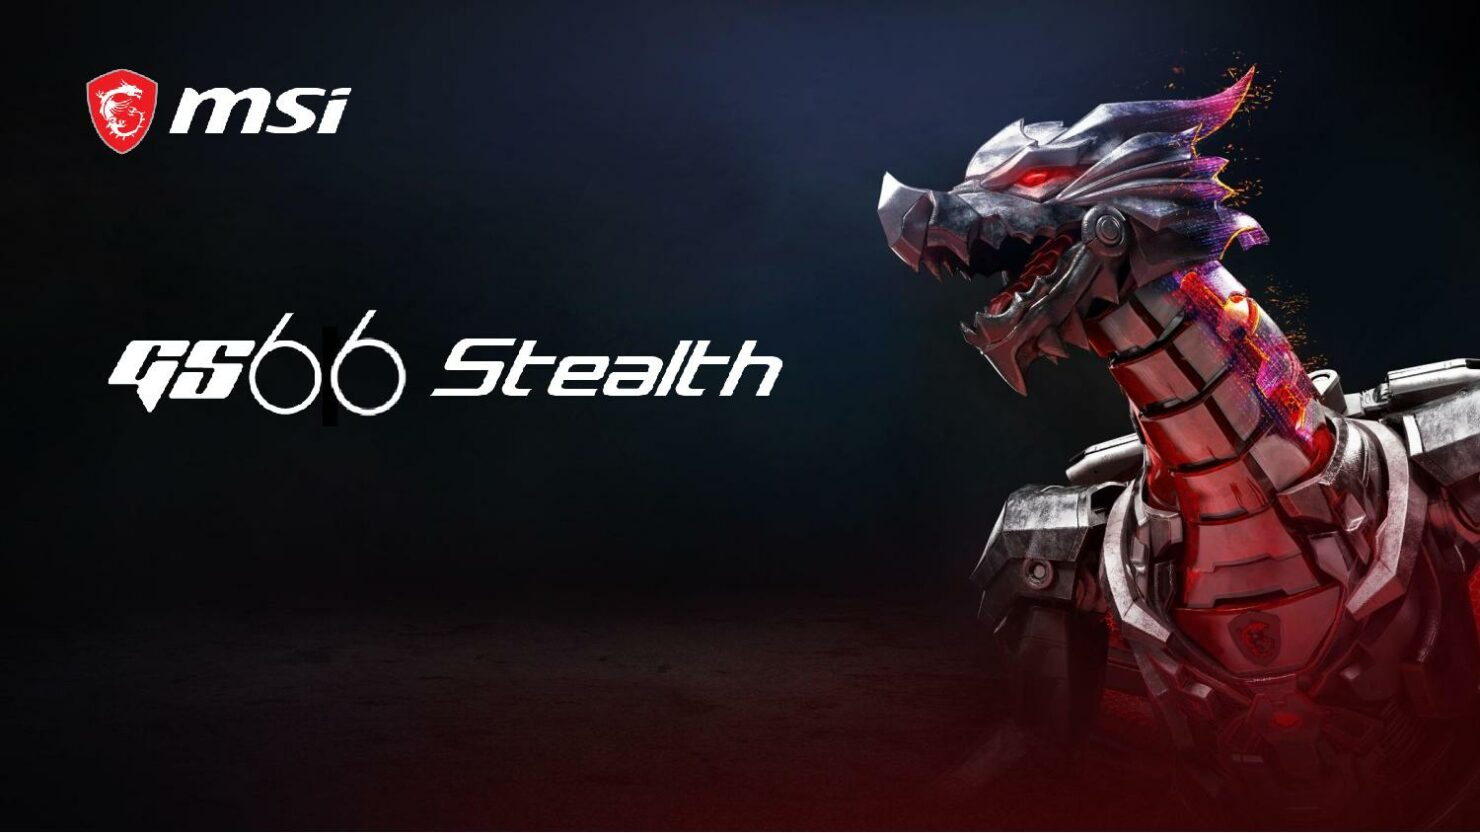 msi-gs66-stealth-product-information-page-001-2